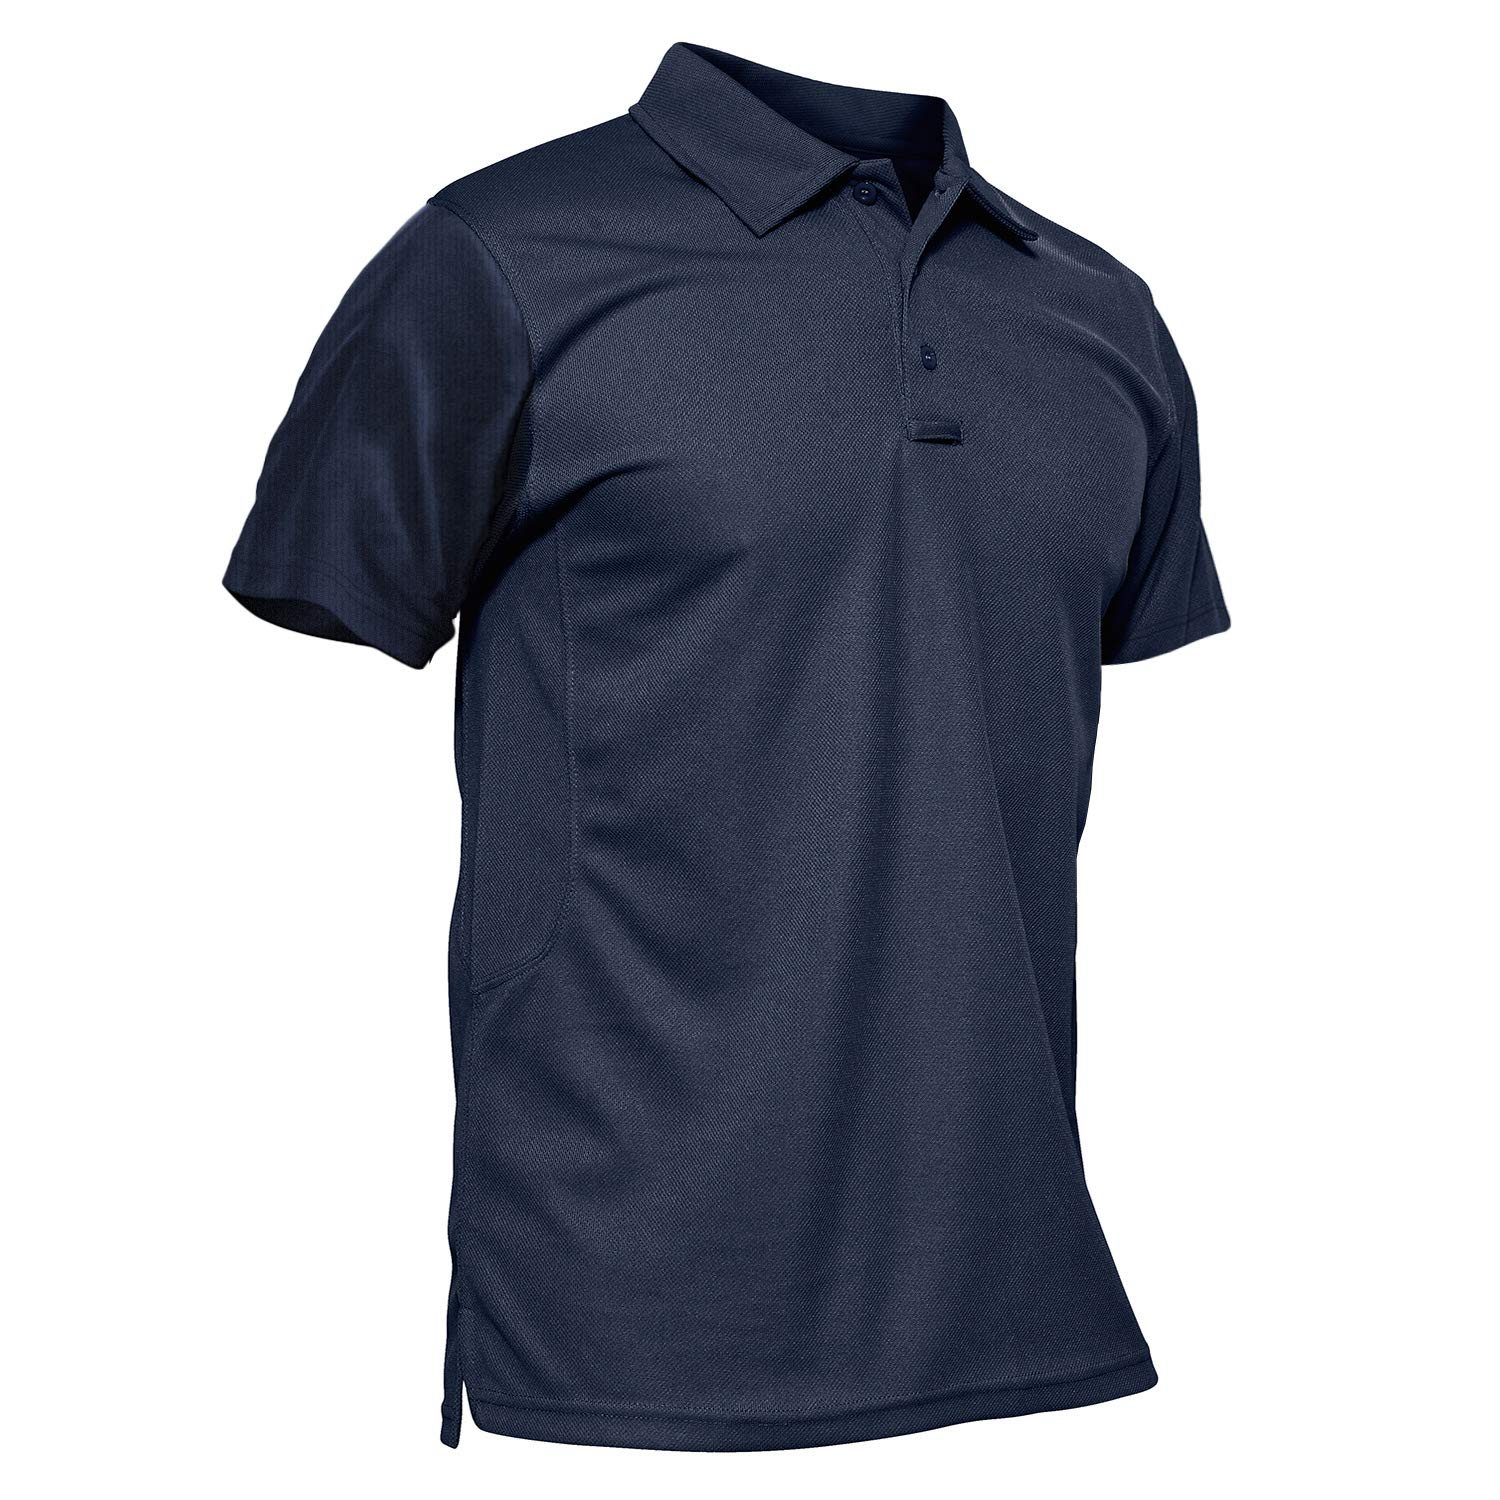 MAGCOMSEN Military Polo Shirts for Men Short-Sleeve Work Polo Performance Quick Dry Jersey Polo Shirt by MAGCOMSEN